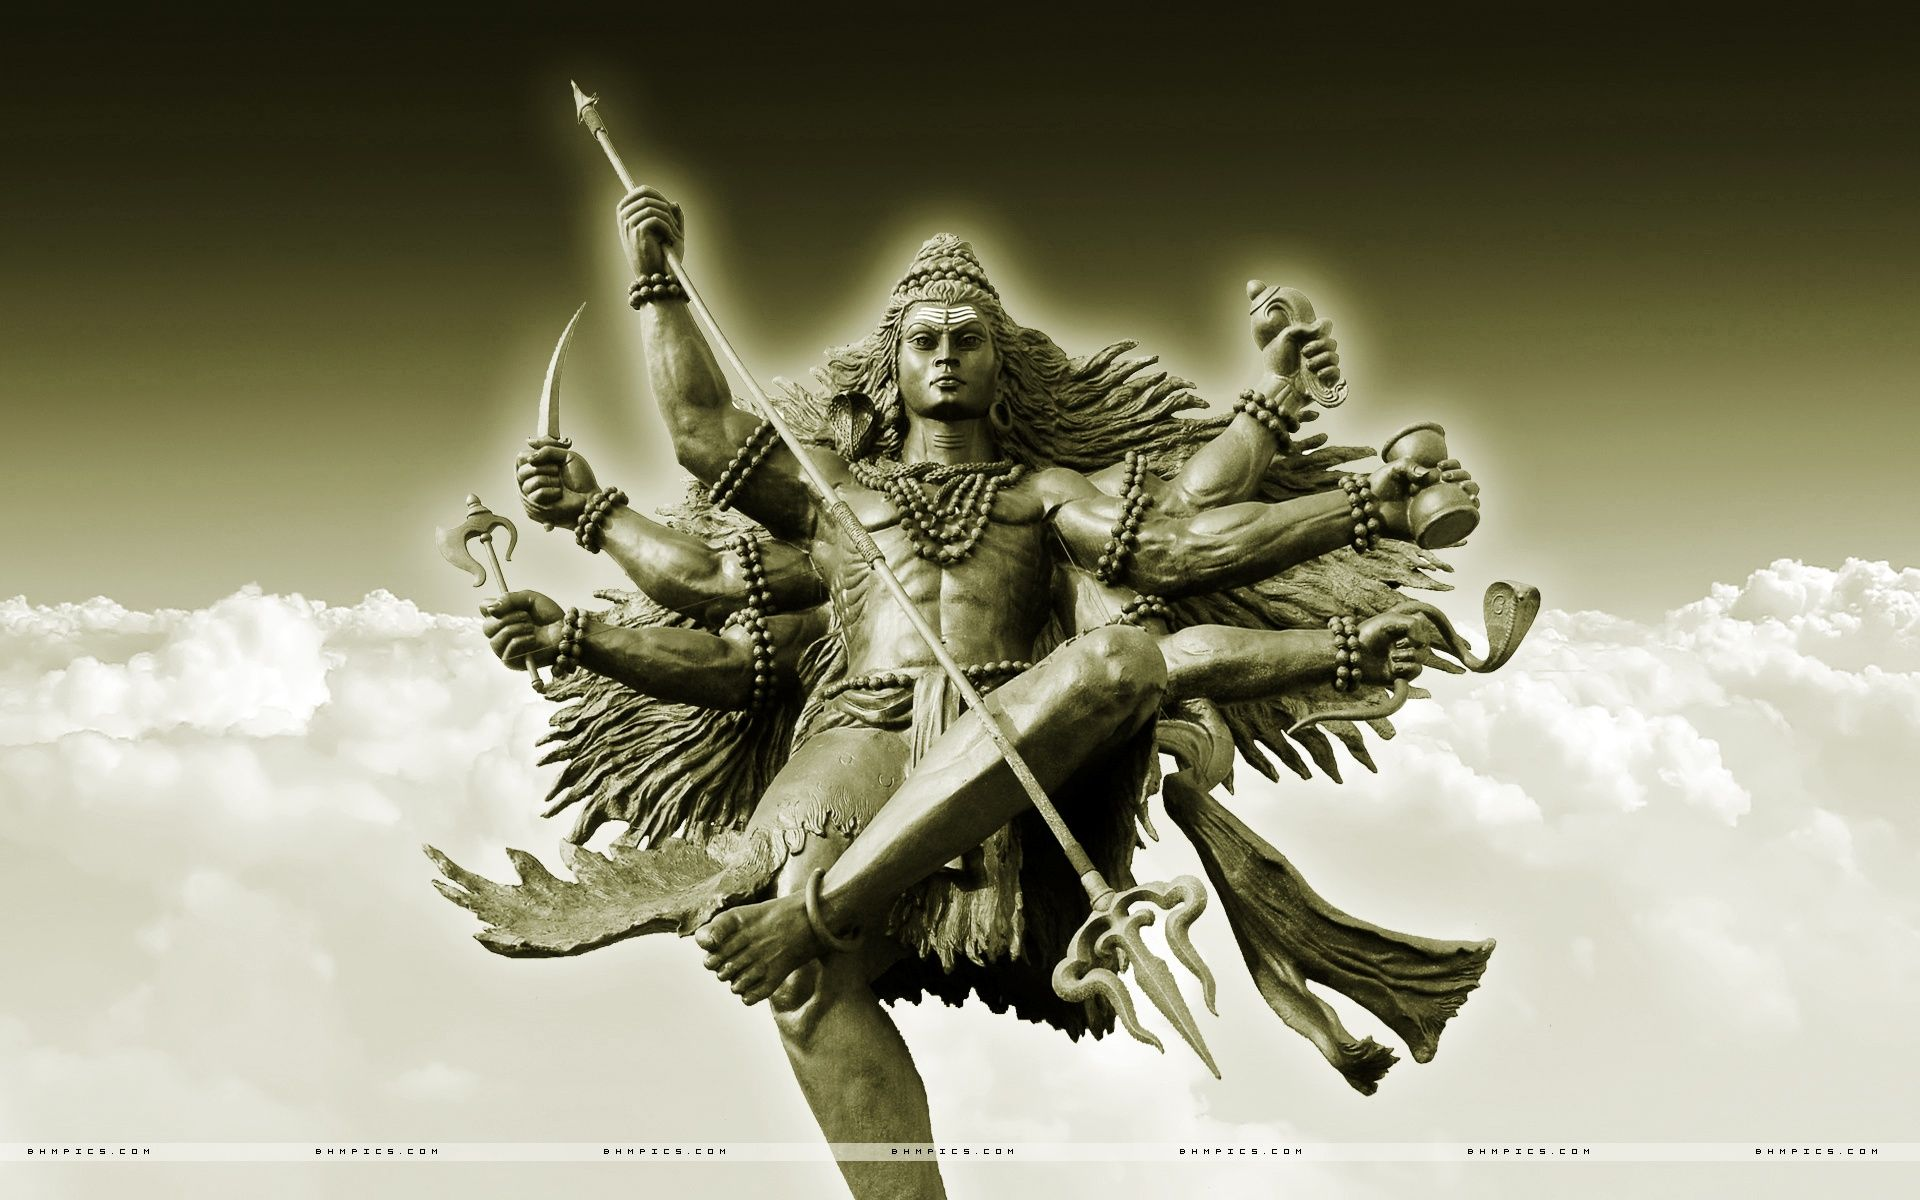 Download Wallpaper High Resolution Lord Shiva - d0990a291b5ea7dfa3c21abb08db3221  Trends_51060.jpg